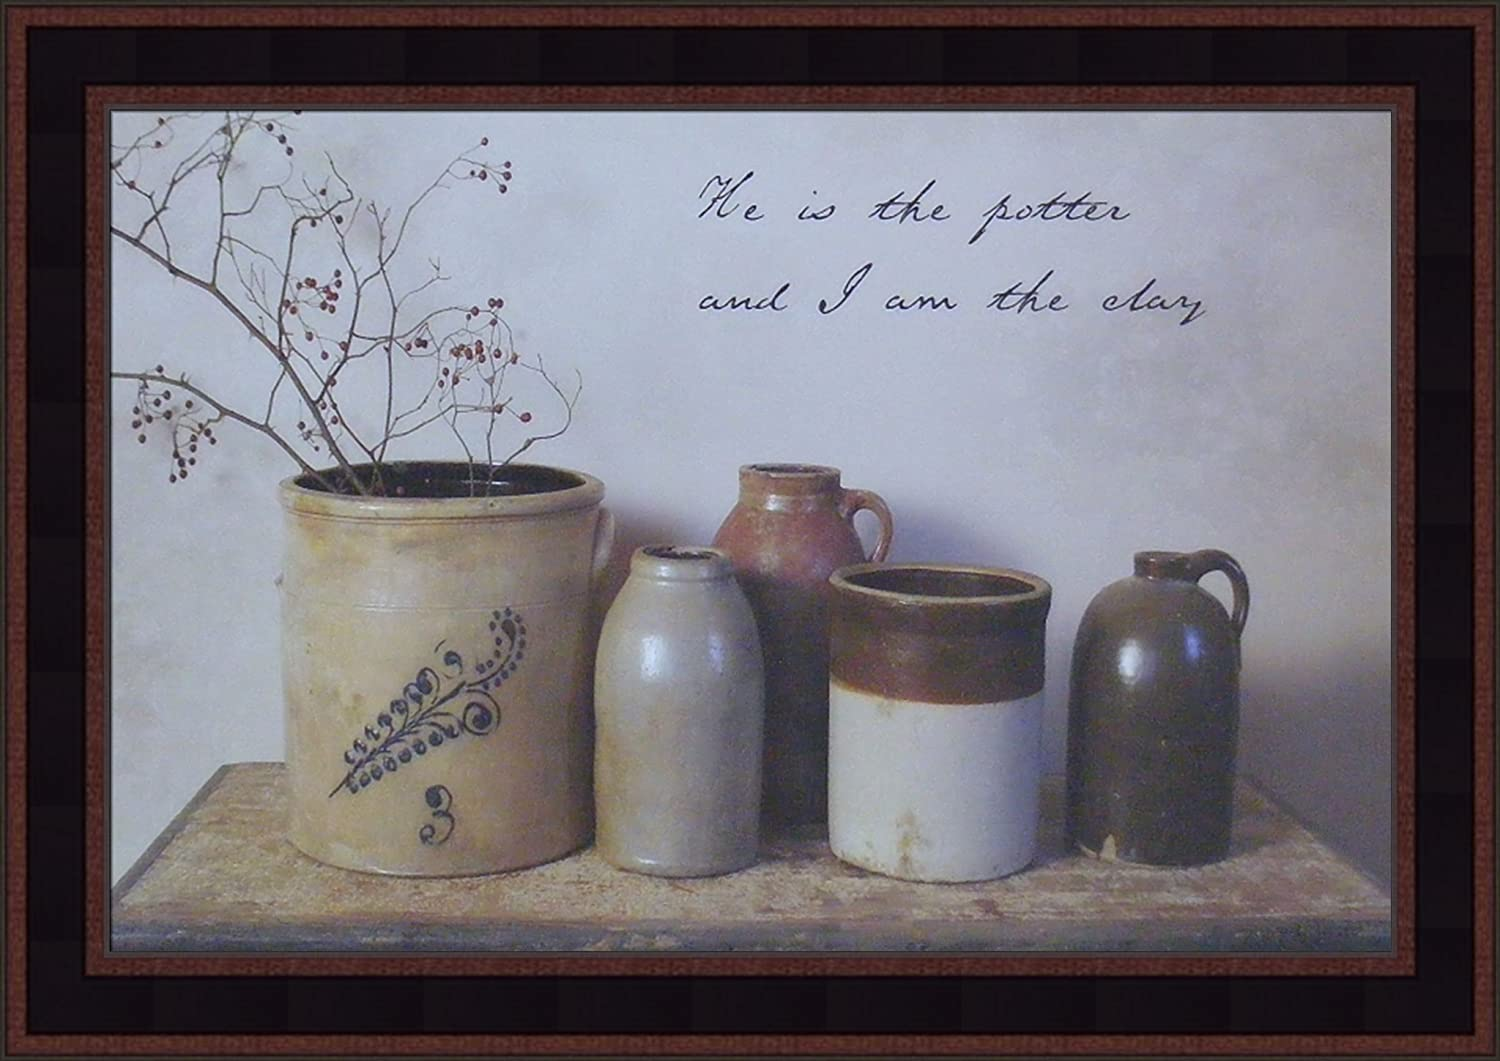 Home Cabin Décor He is The Potter by Billy Jacobs 15x21 I Am The Clay Crocks Country Primitive Folk Art Photography Framed Picture